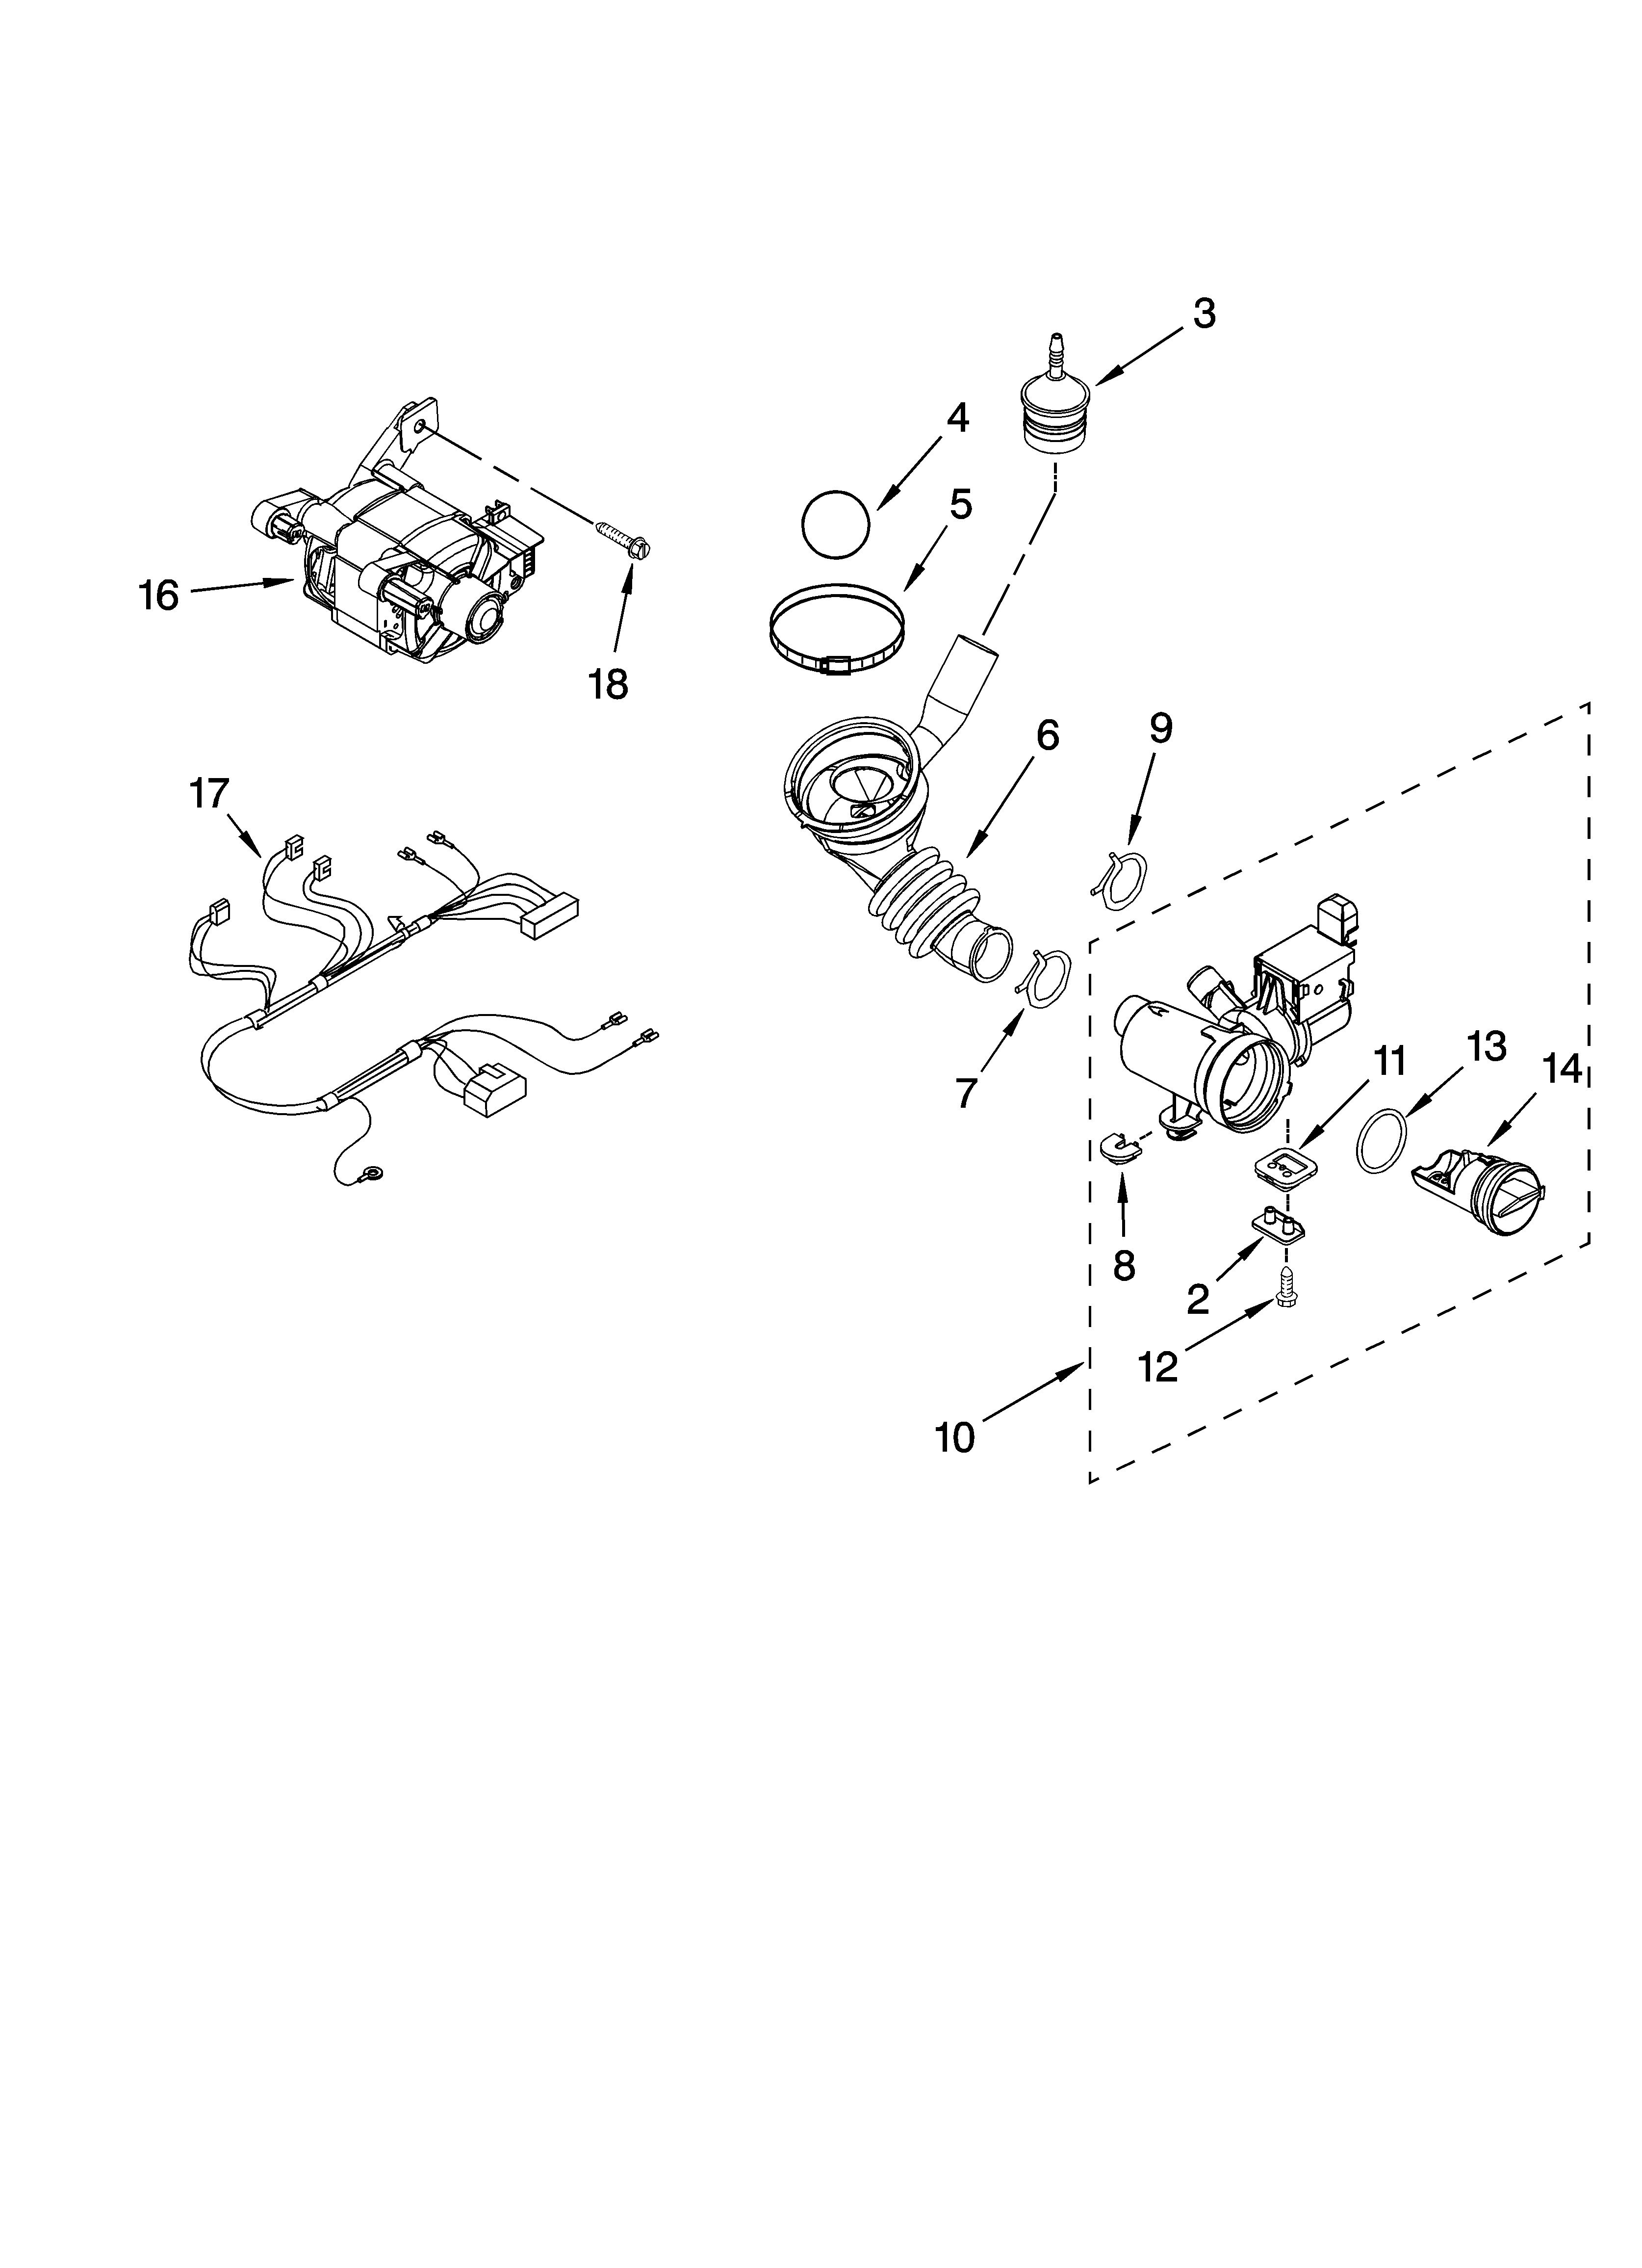 kenmore he2 plus washer parts diagram a well labelled of microscope pump and motor list for model